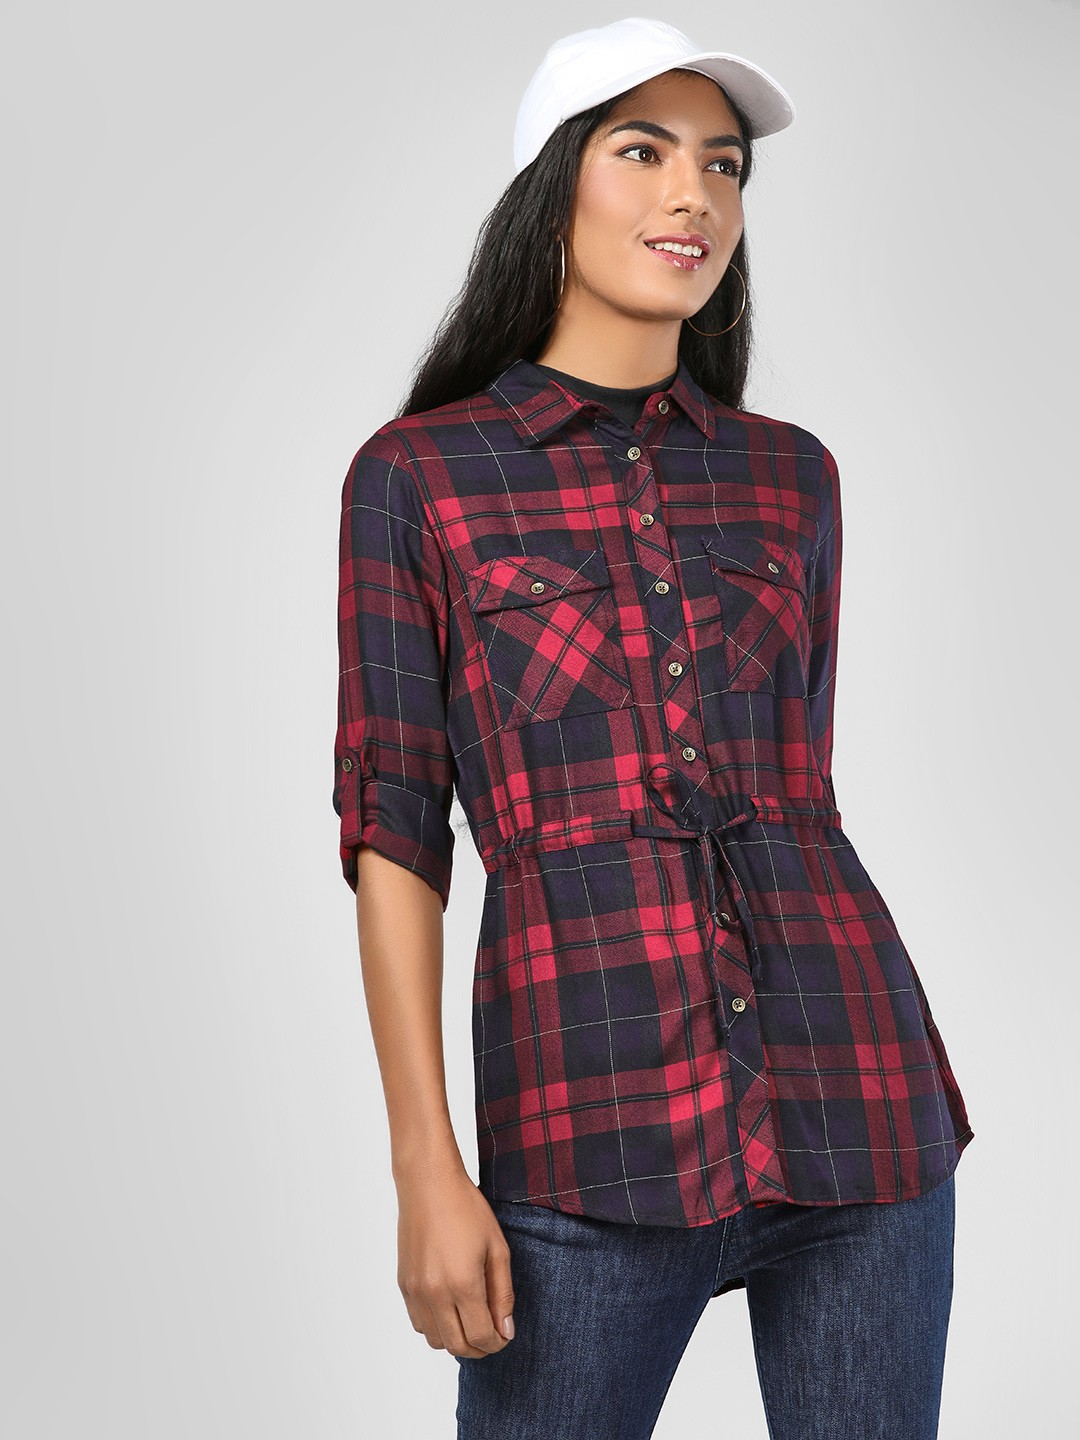 RIG Teal Tie-Up Waist Checkered Shirt 1